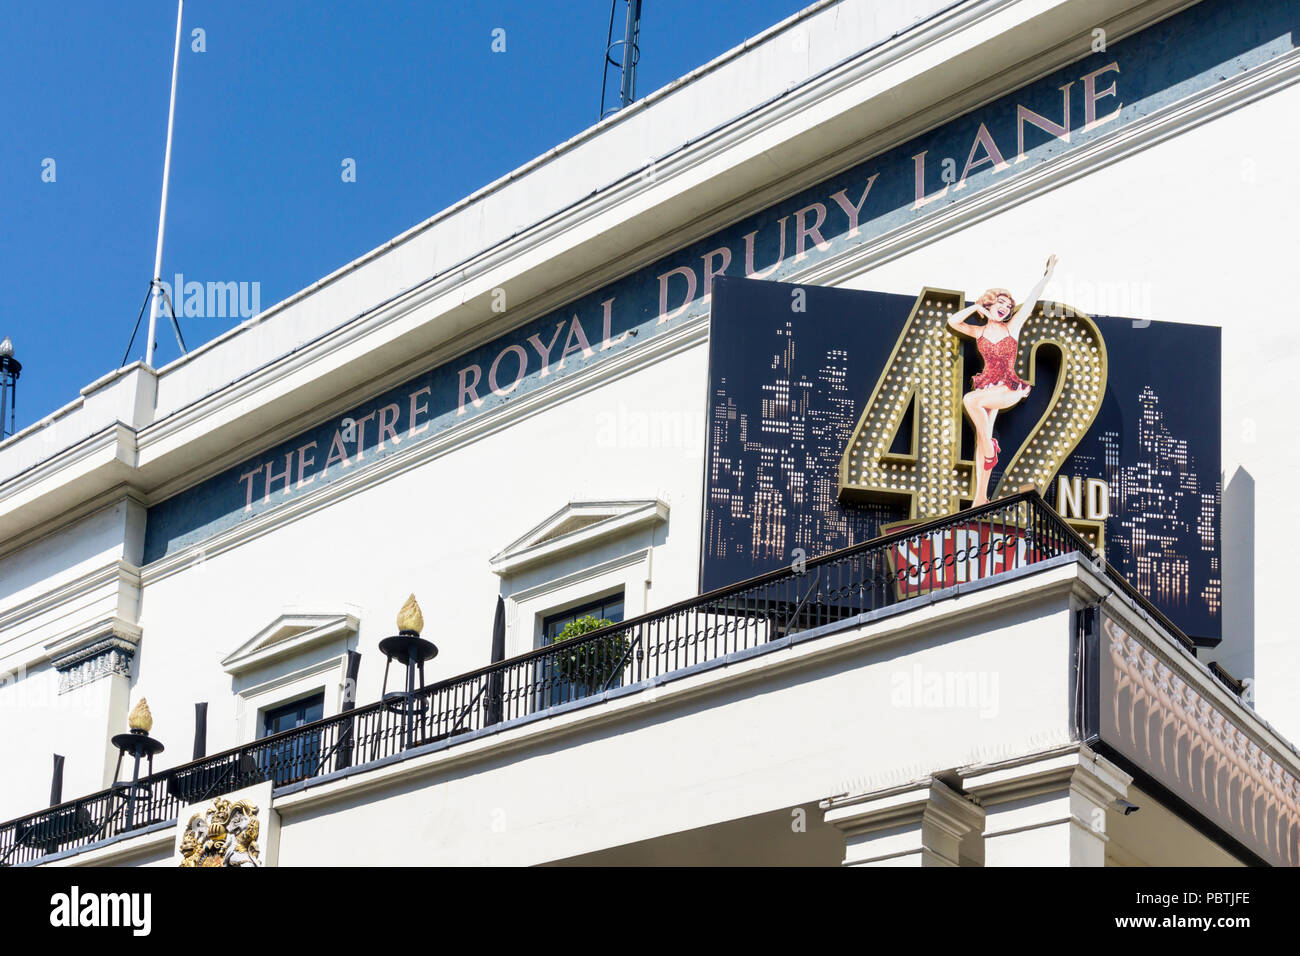 The musical 42nd Street at the Theatre Royal Drury Lane in the West End of London. - Stock Image